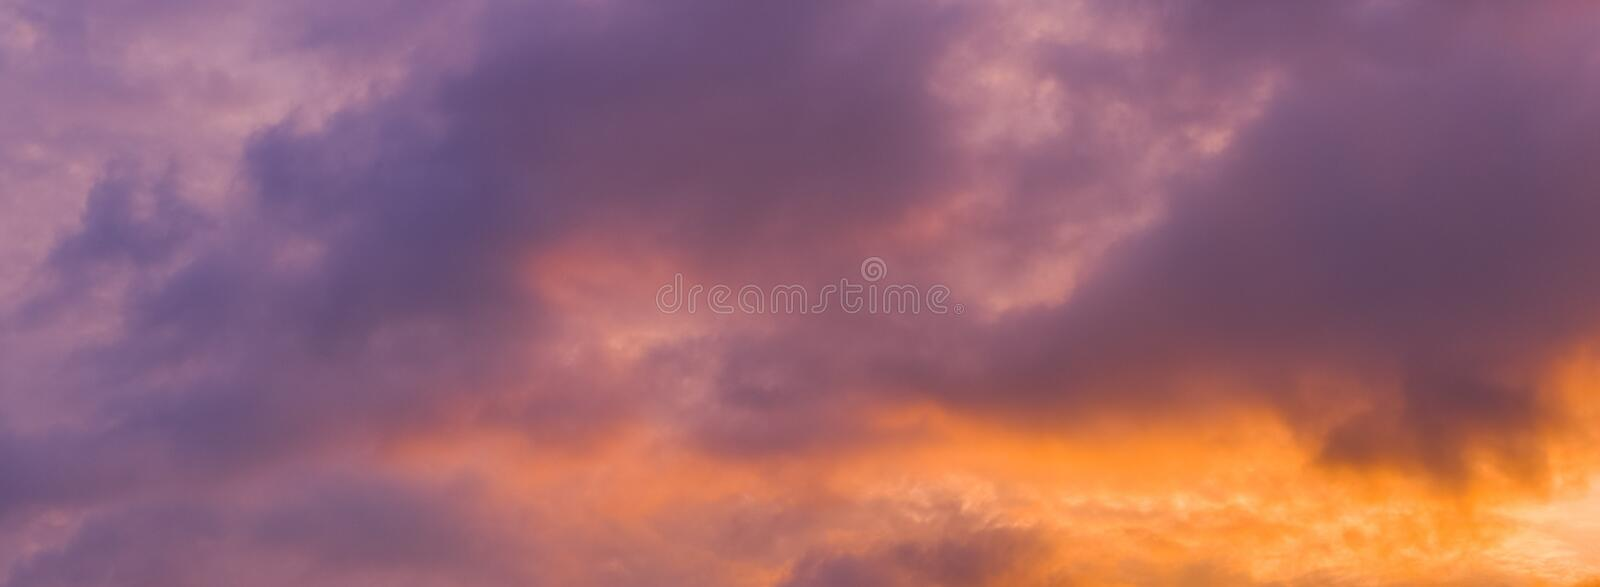 Panorama view of dramatic beautiful nature sunset sky and clouds. Background royalty free stock image